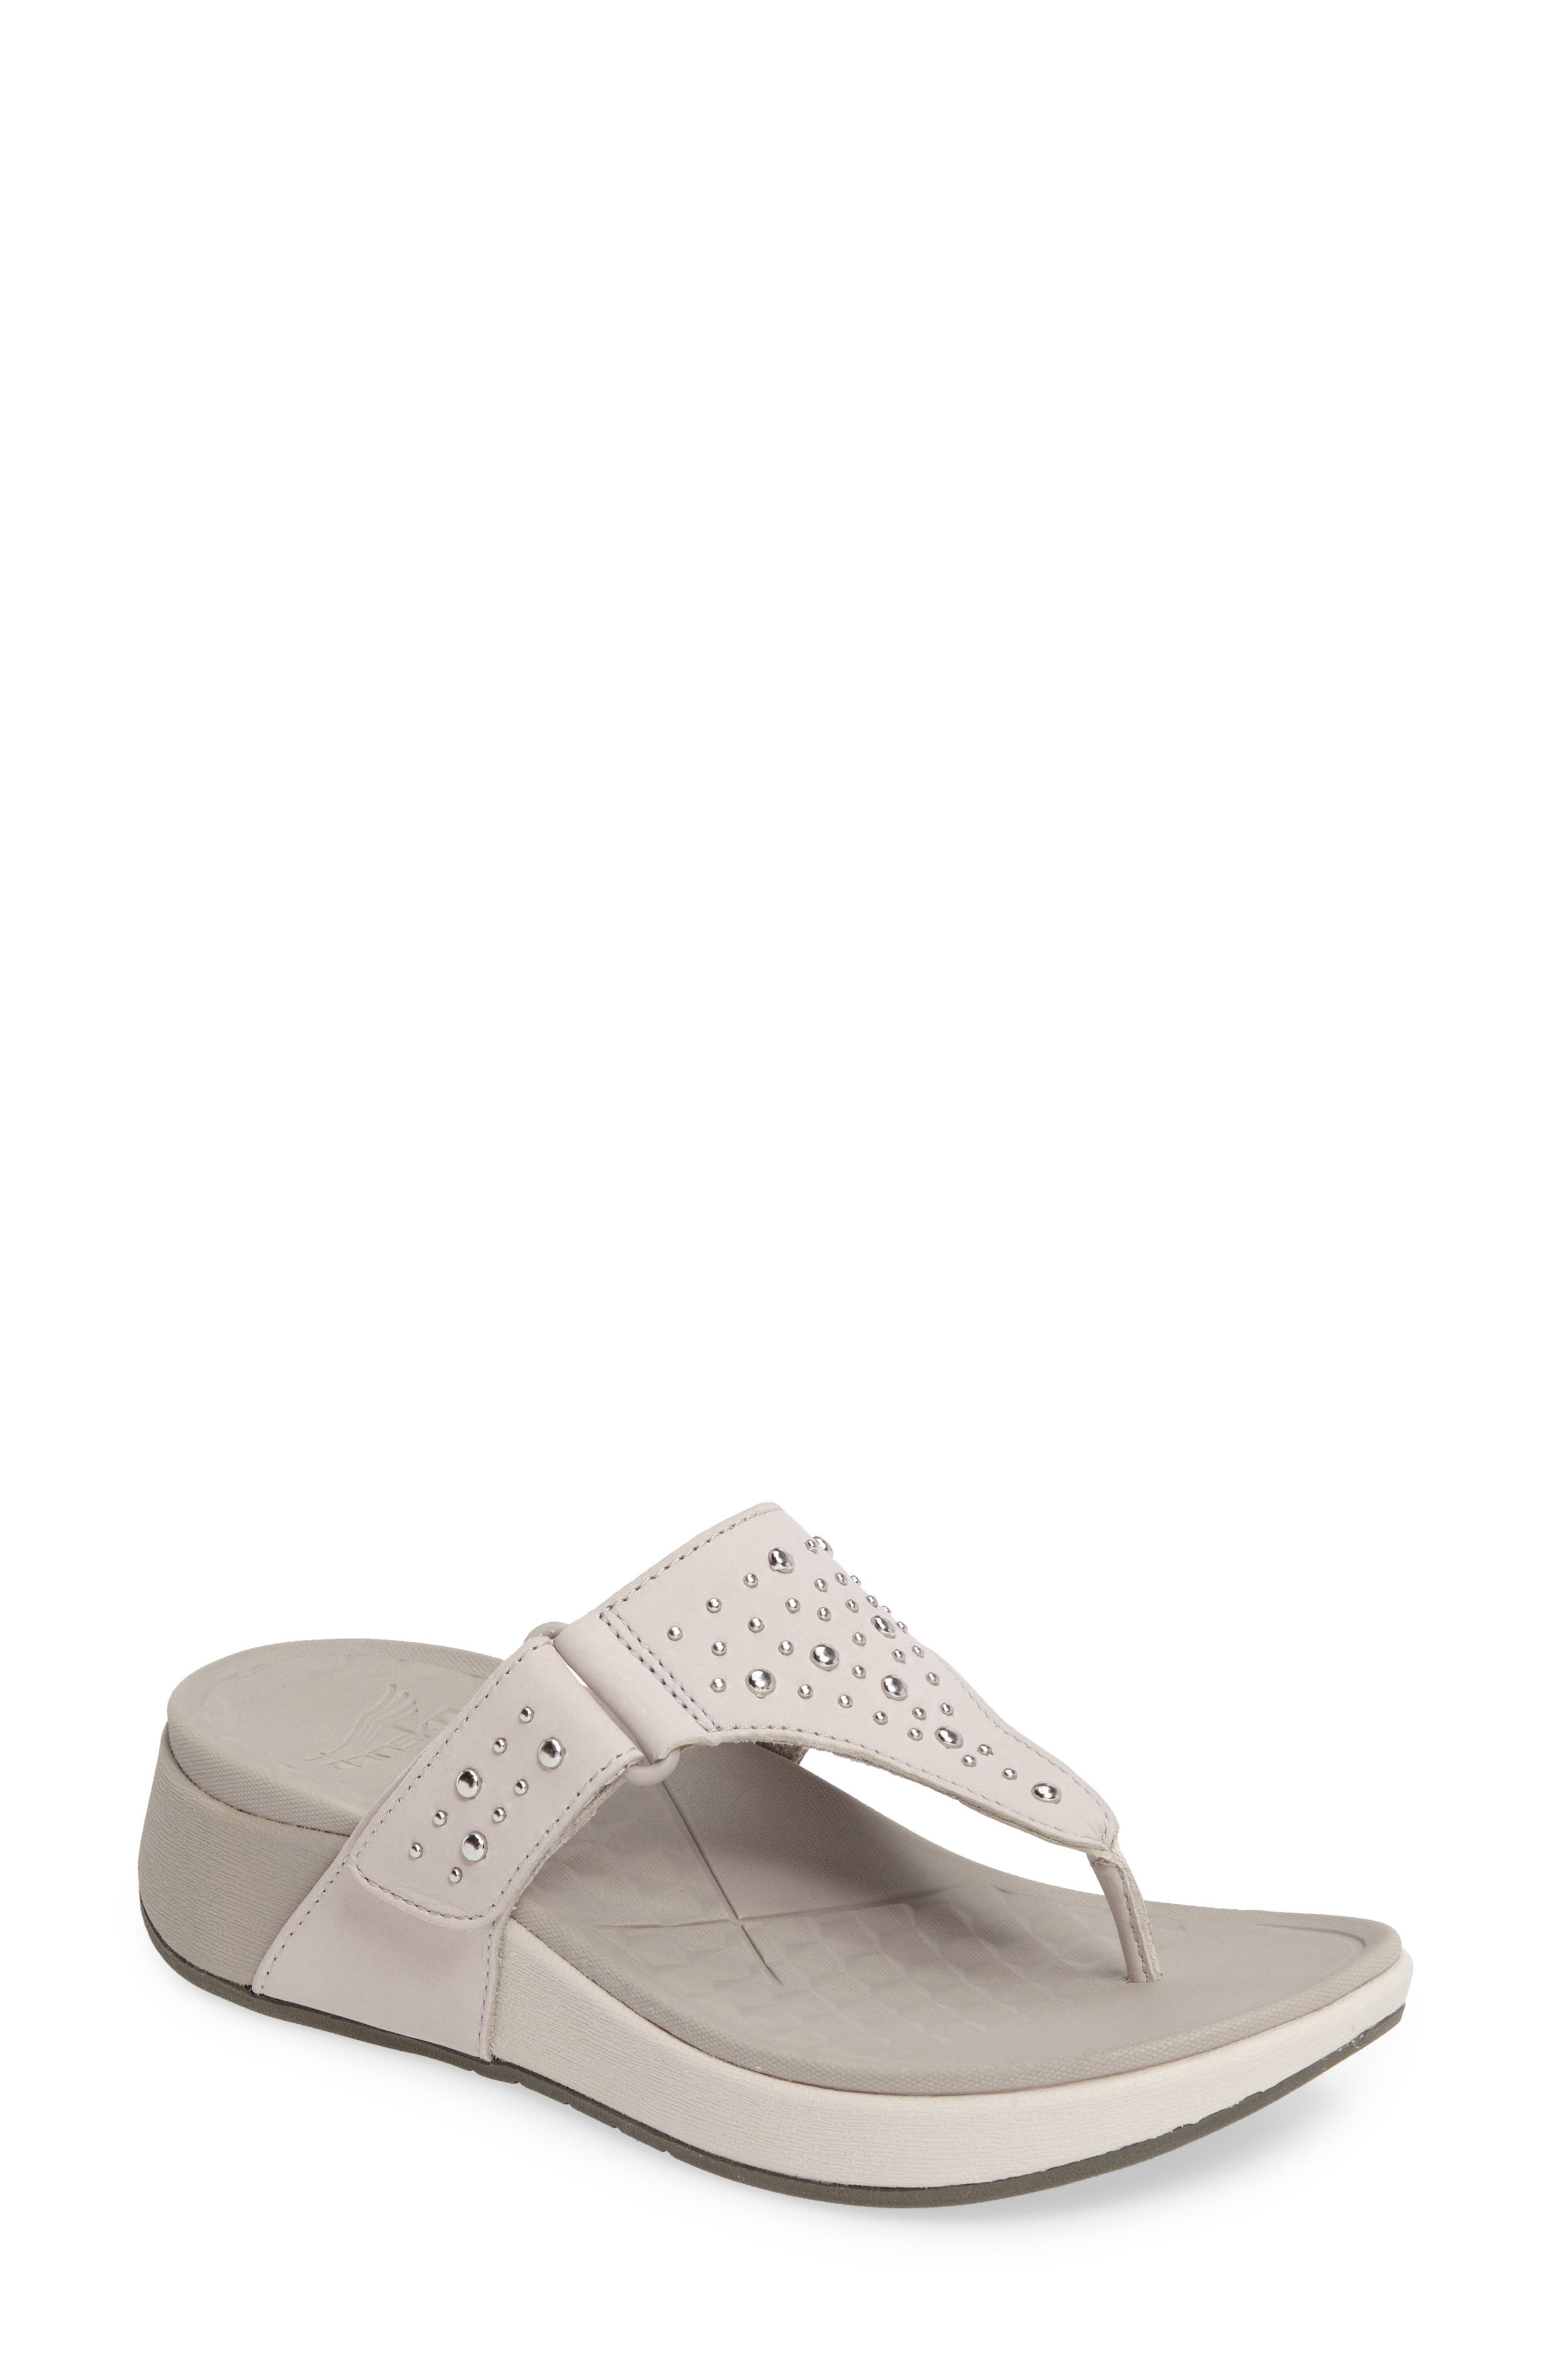 Catalina Sandal,                         Main,                         color, Ivory Nubuck Leather